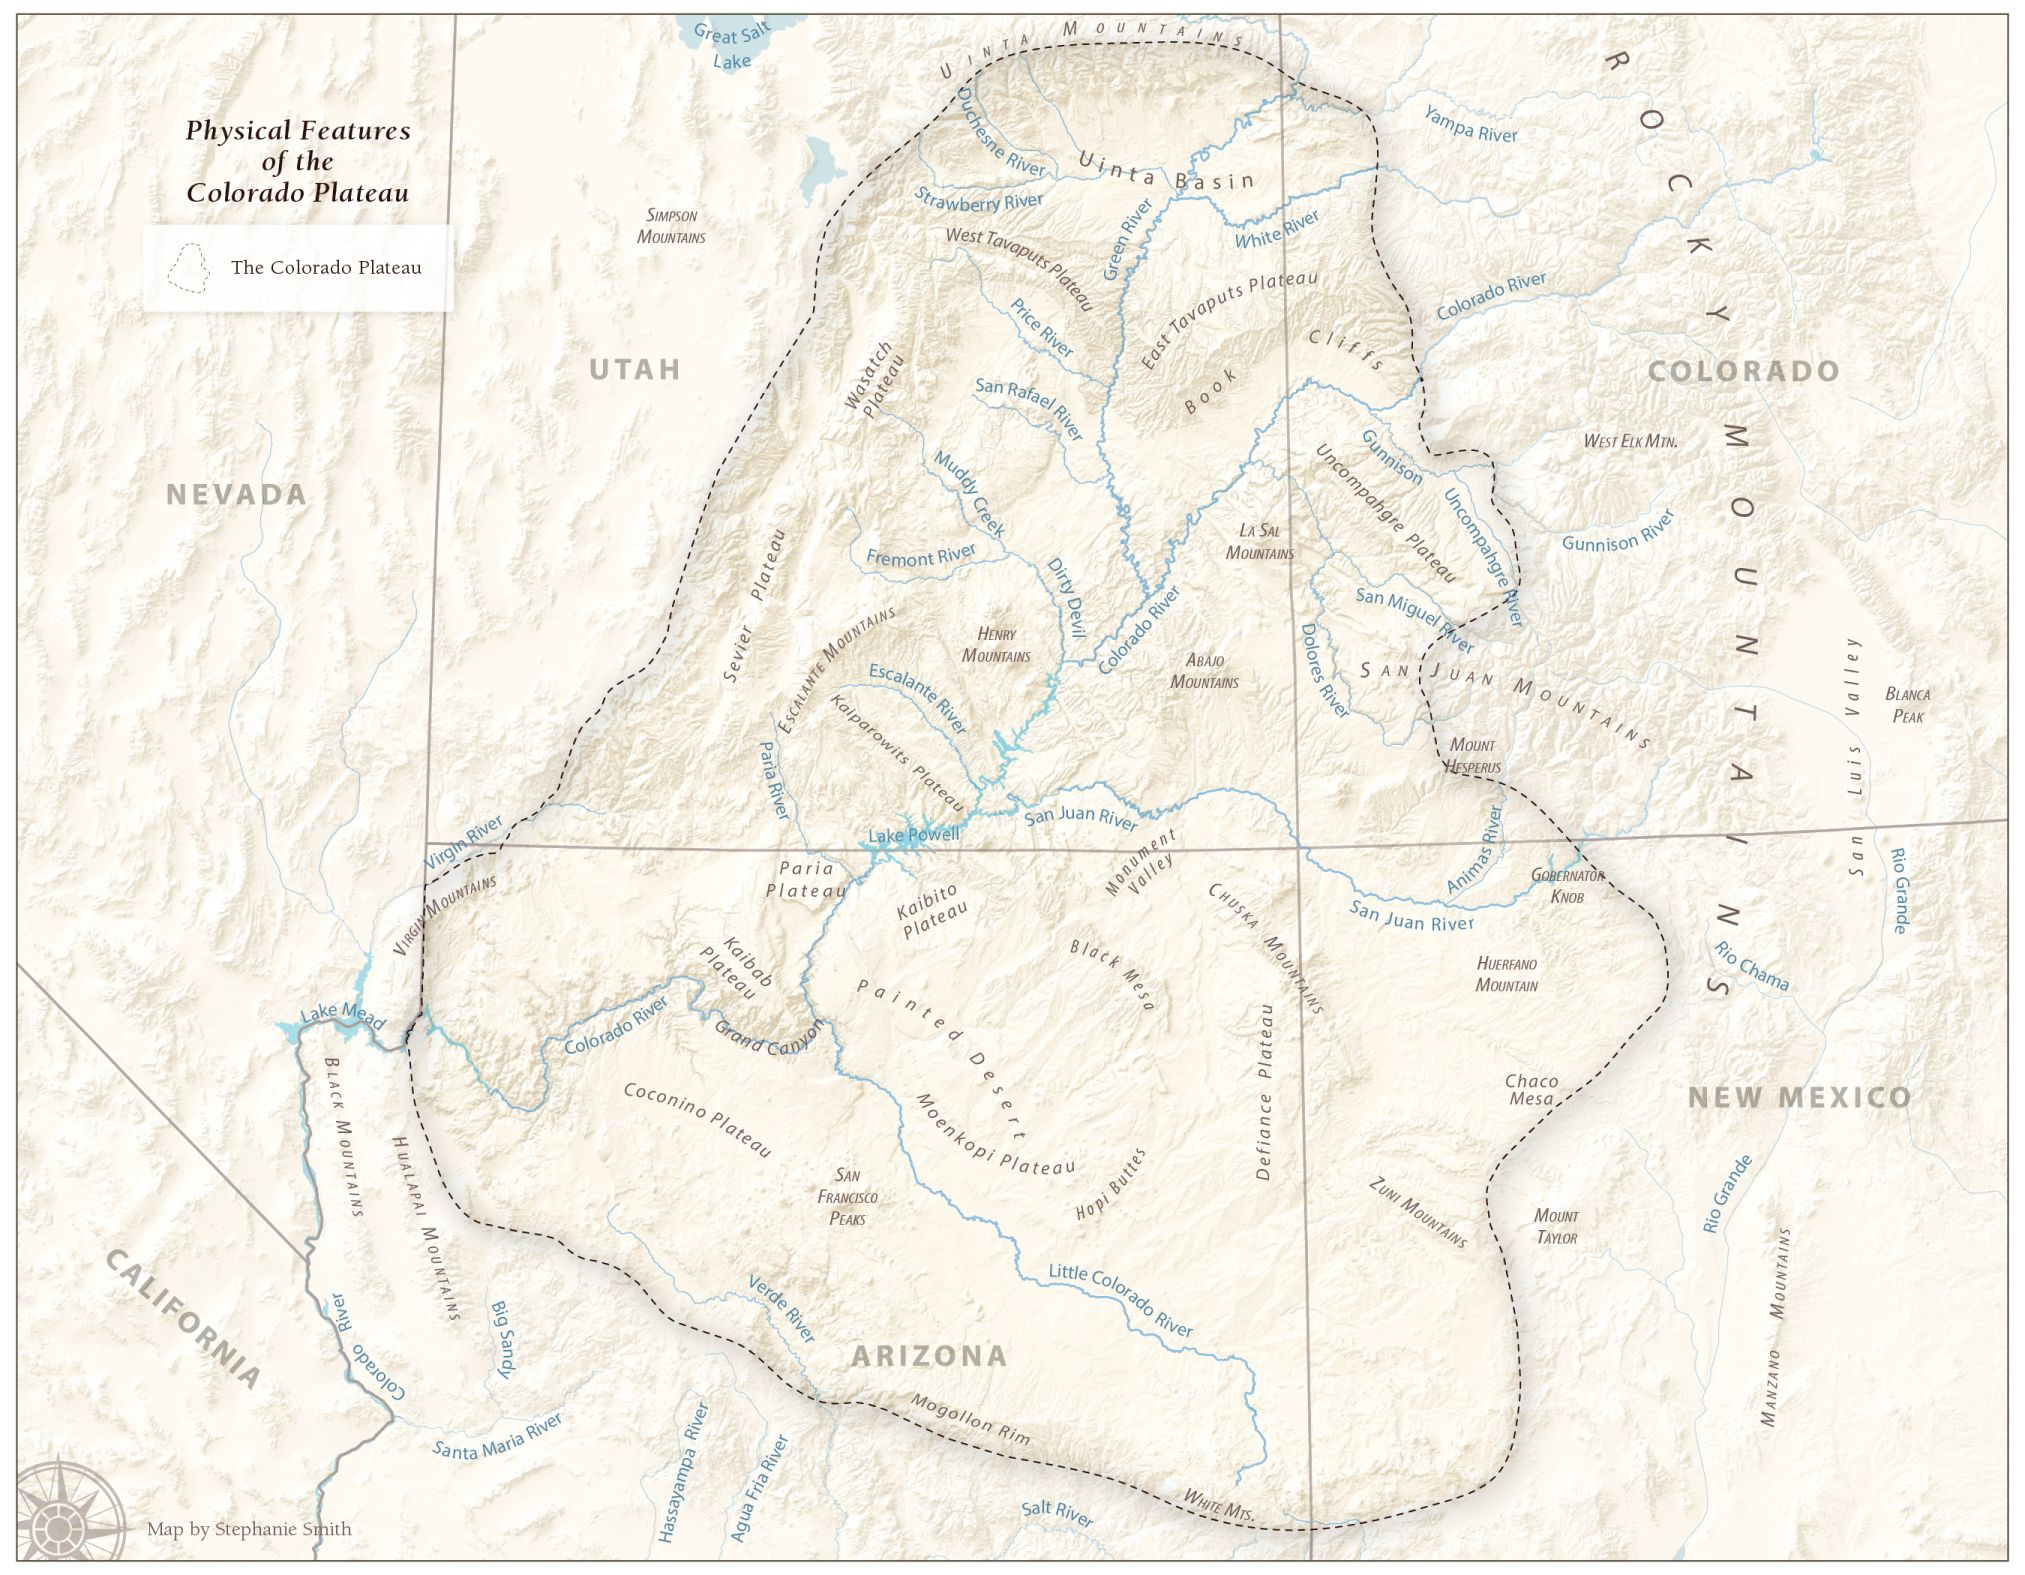 Physical Features of the Colorado Plateau